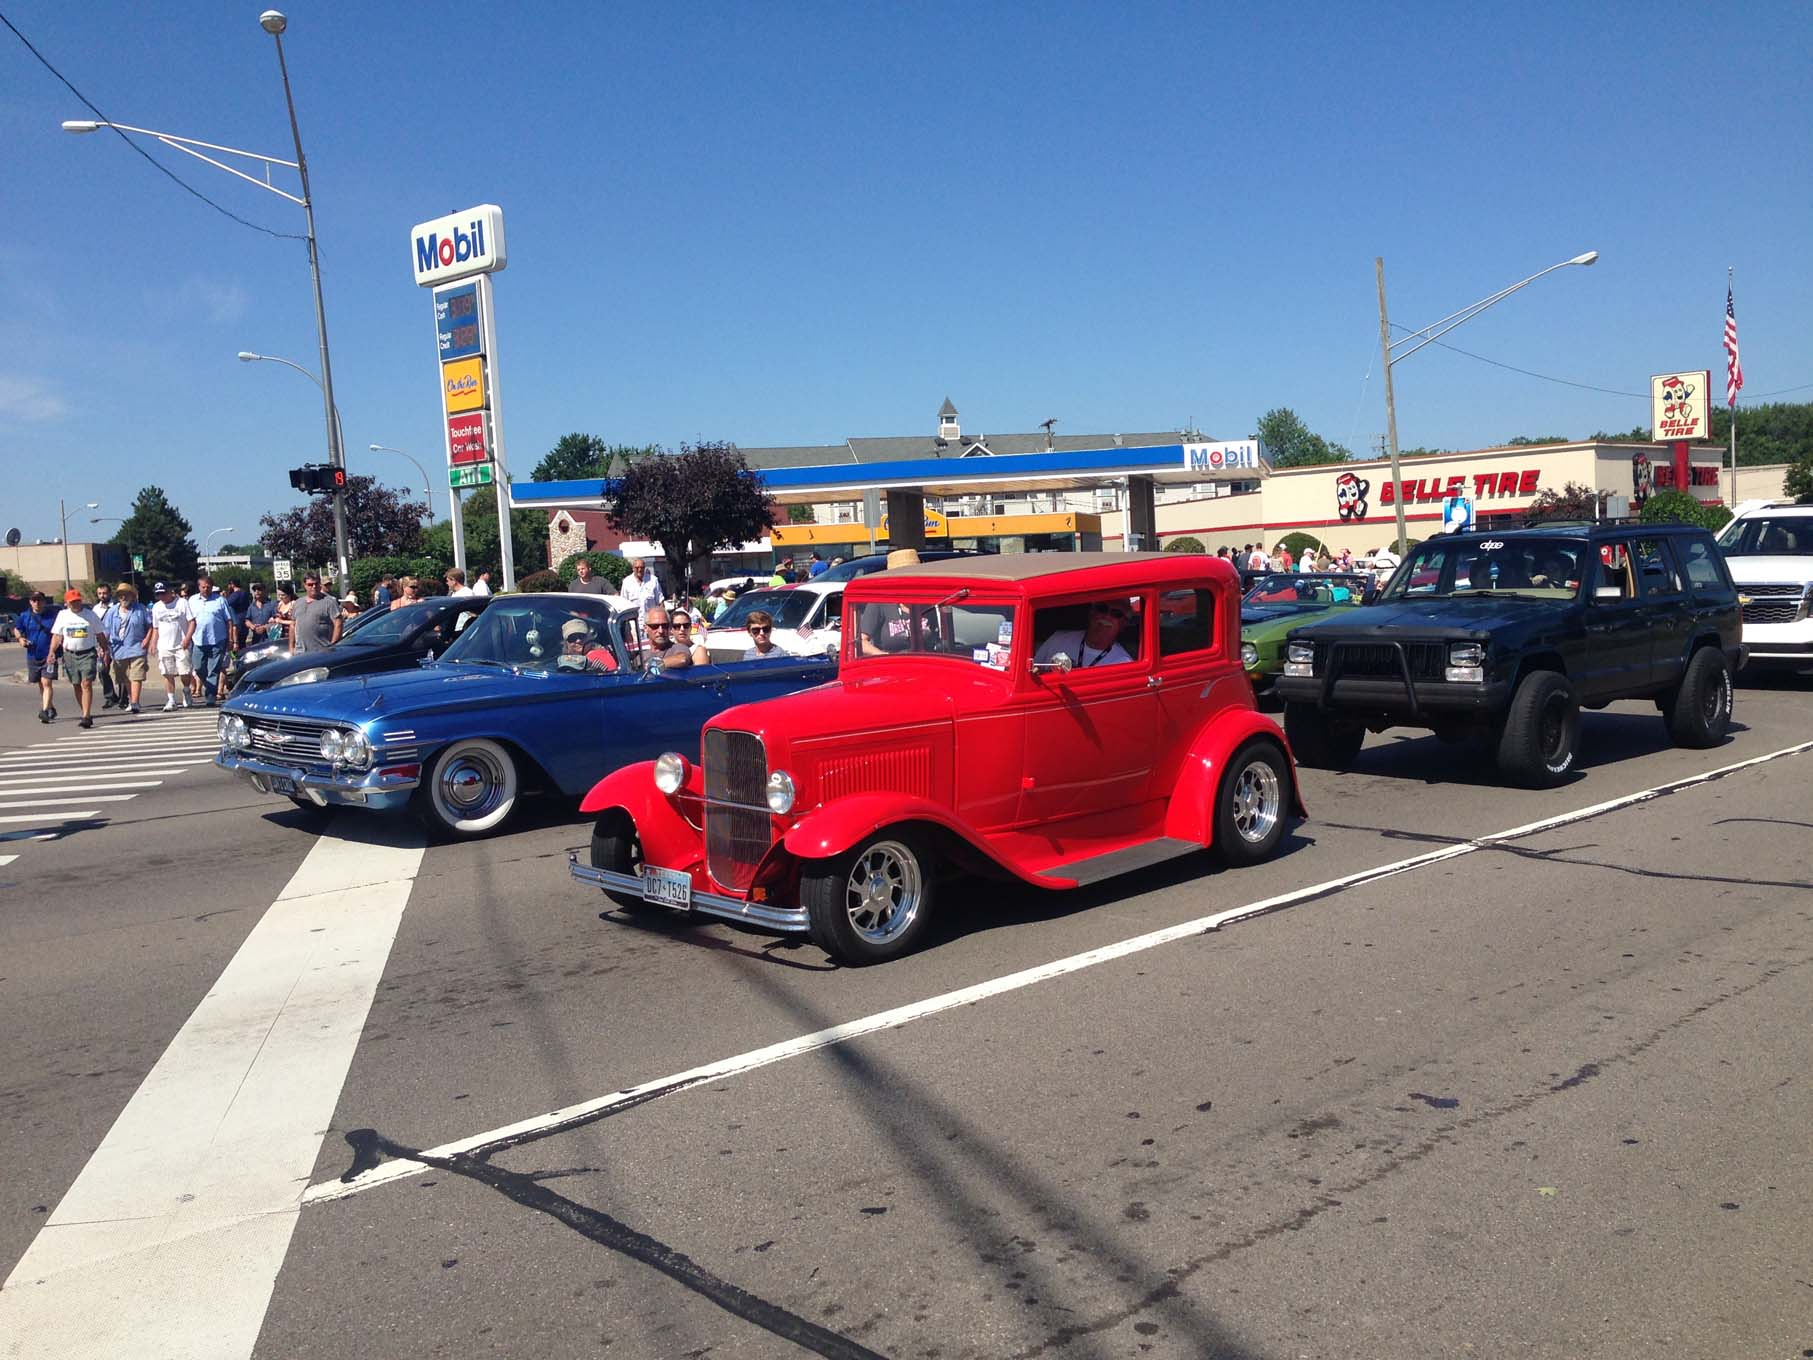 There is always a great mix of vehicles cruising up and down Woodward Avenue. Street rods, customs, muscle cars and modern special interest vehicles line the street. Most Dream Cruise veterans realize that by Saturday traffic is heavy and it is best to find a good parking spot to watch the fun.